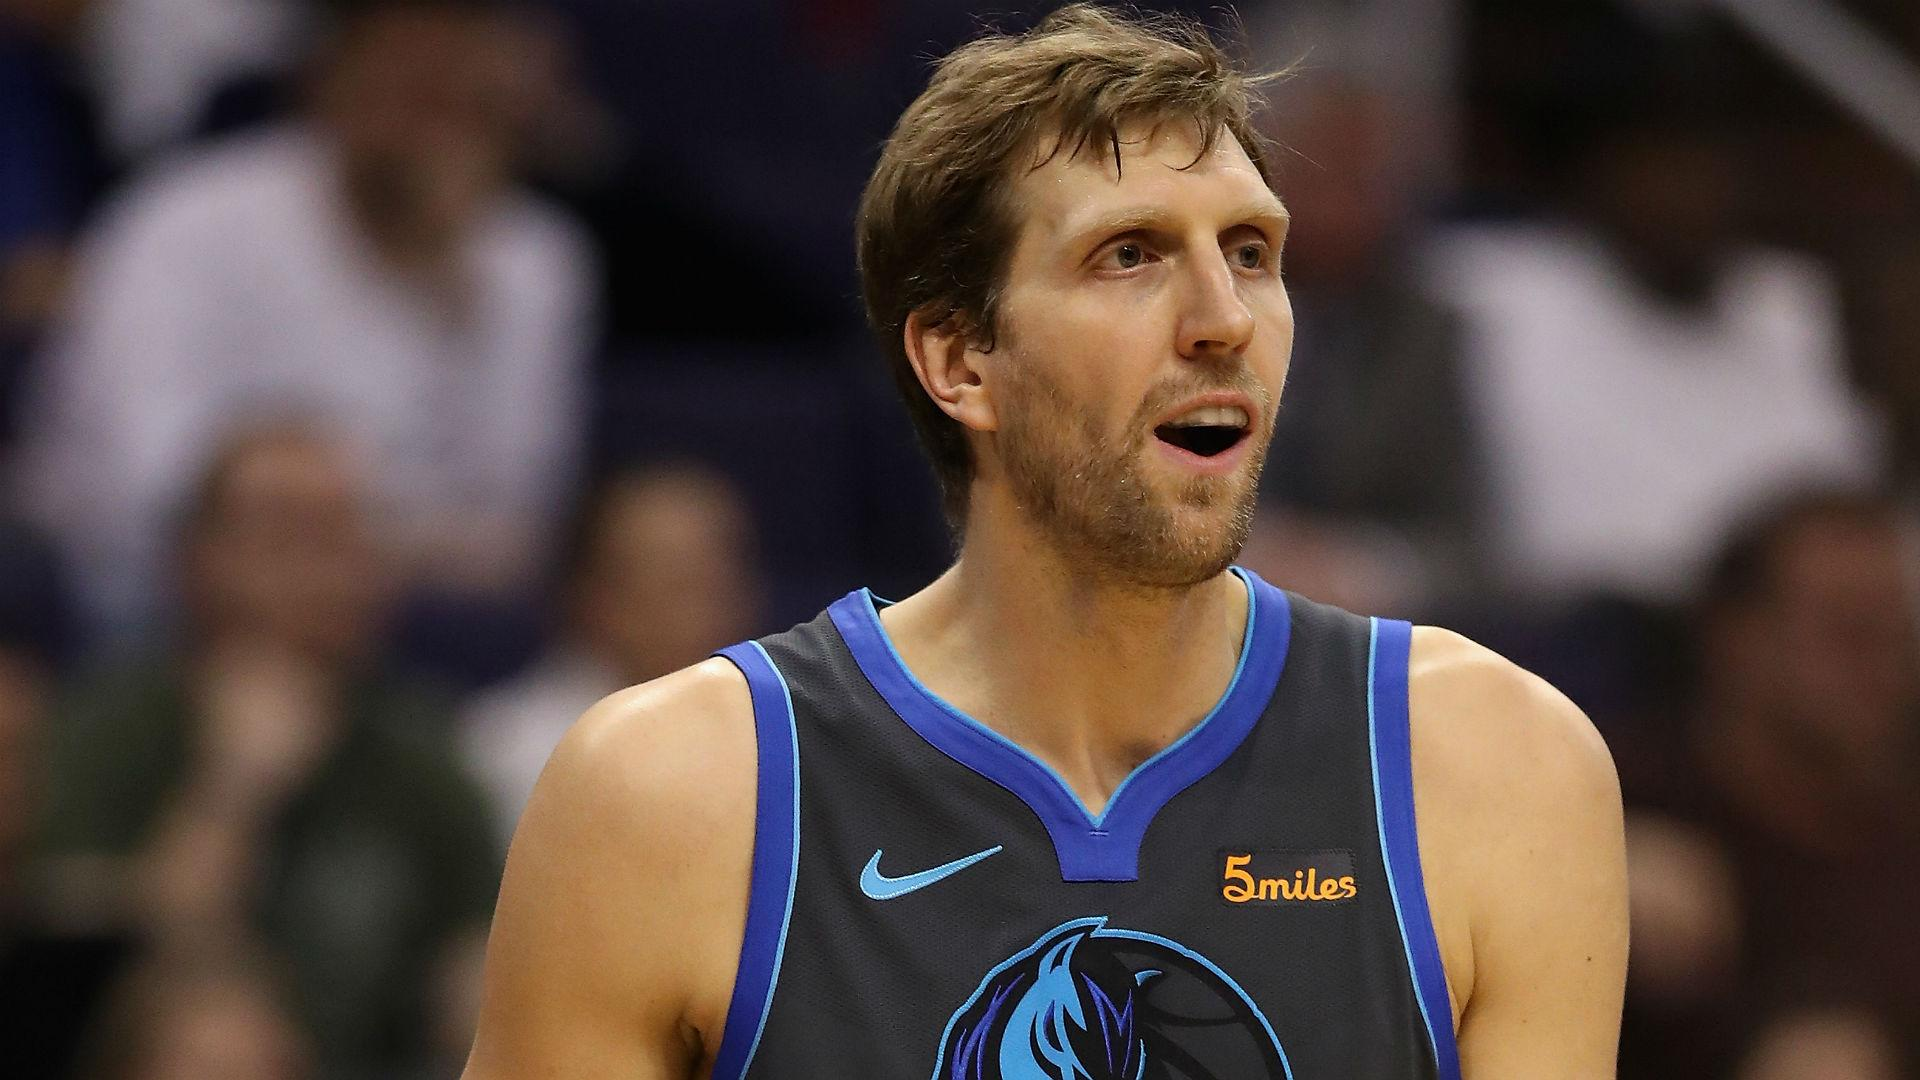 Mavs' Dirk Nowitzki drawing big numbers for final home game